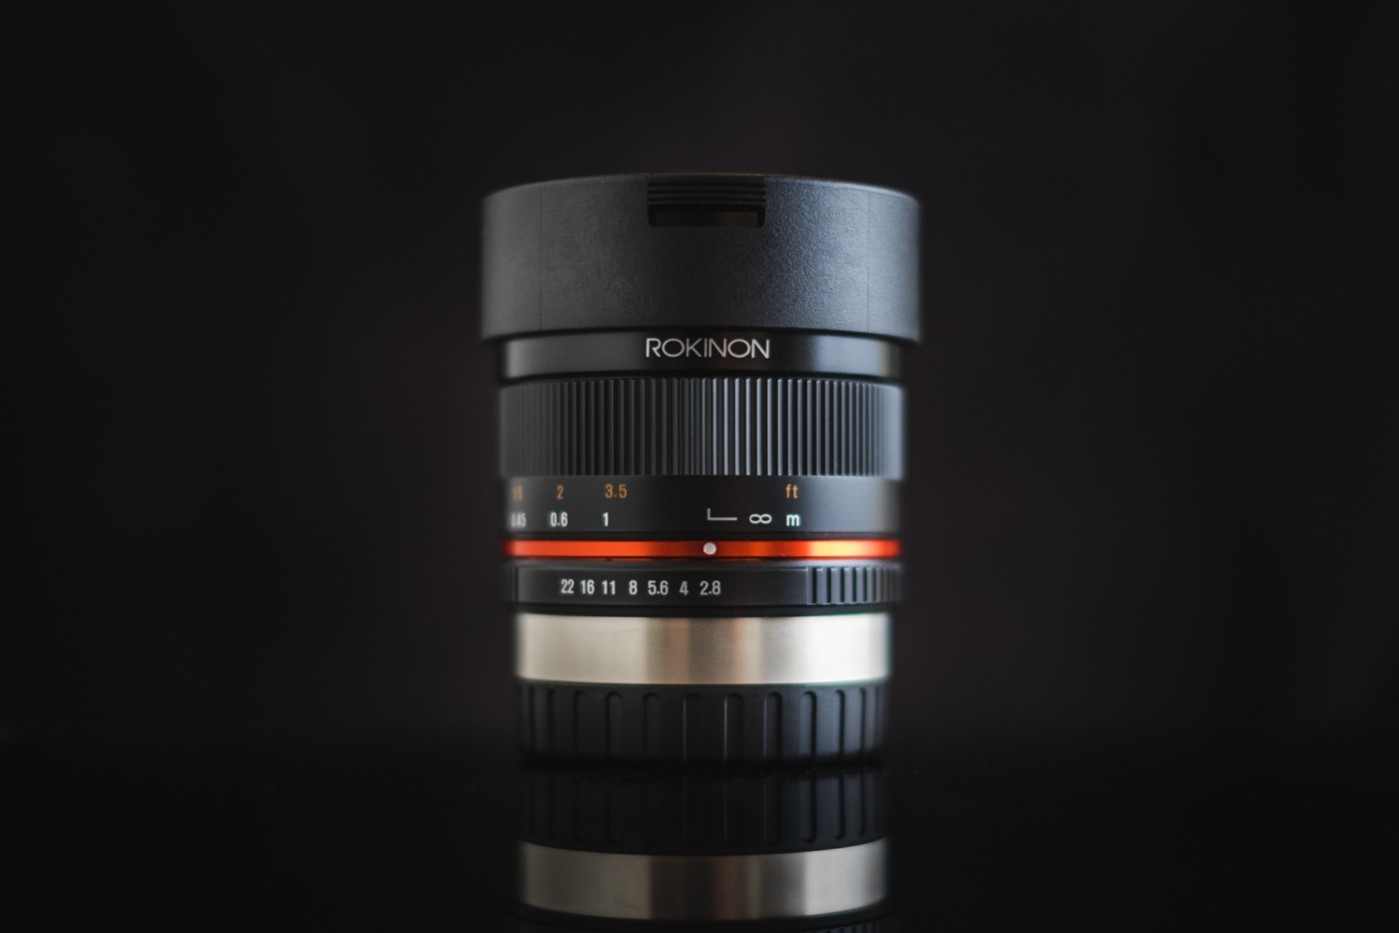 The Rokinon 8mm f/2.8 UMC Fisheye II has a built in petal hood and a cylindrical lens cap.